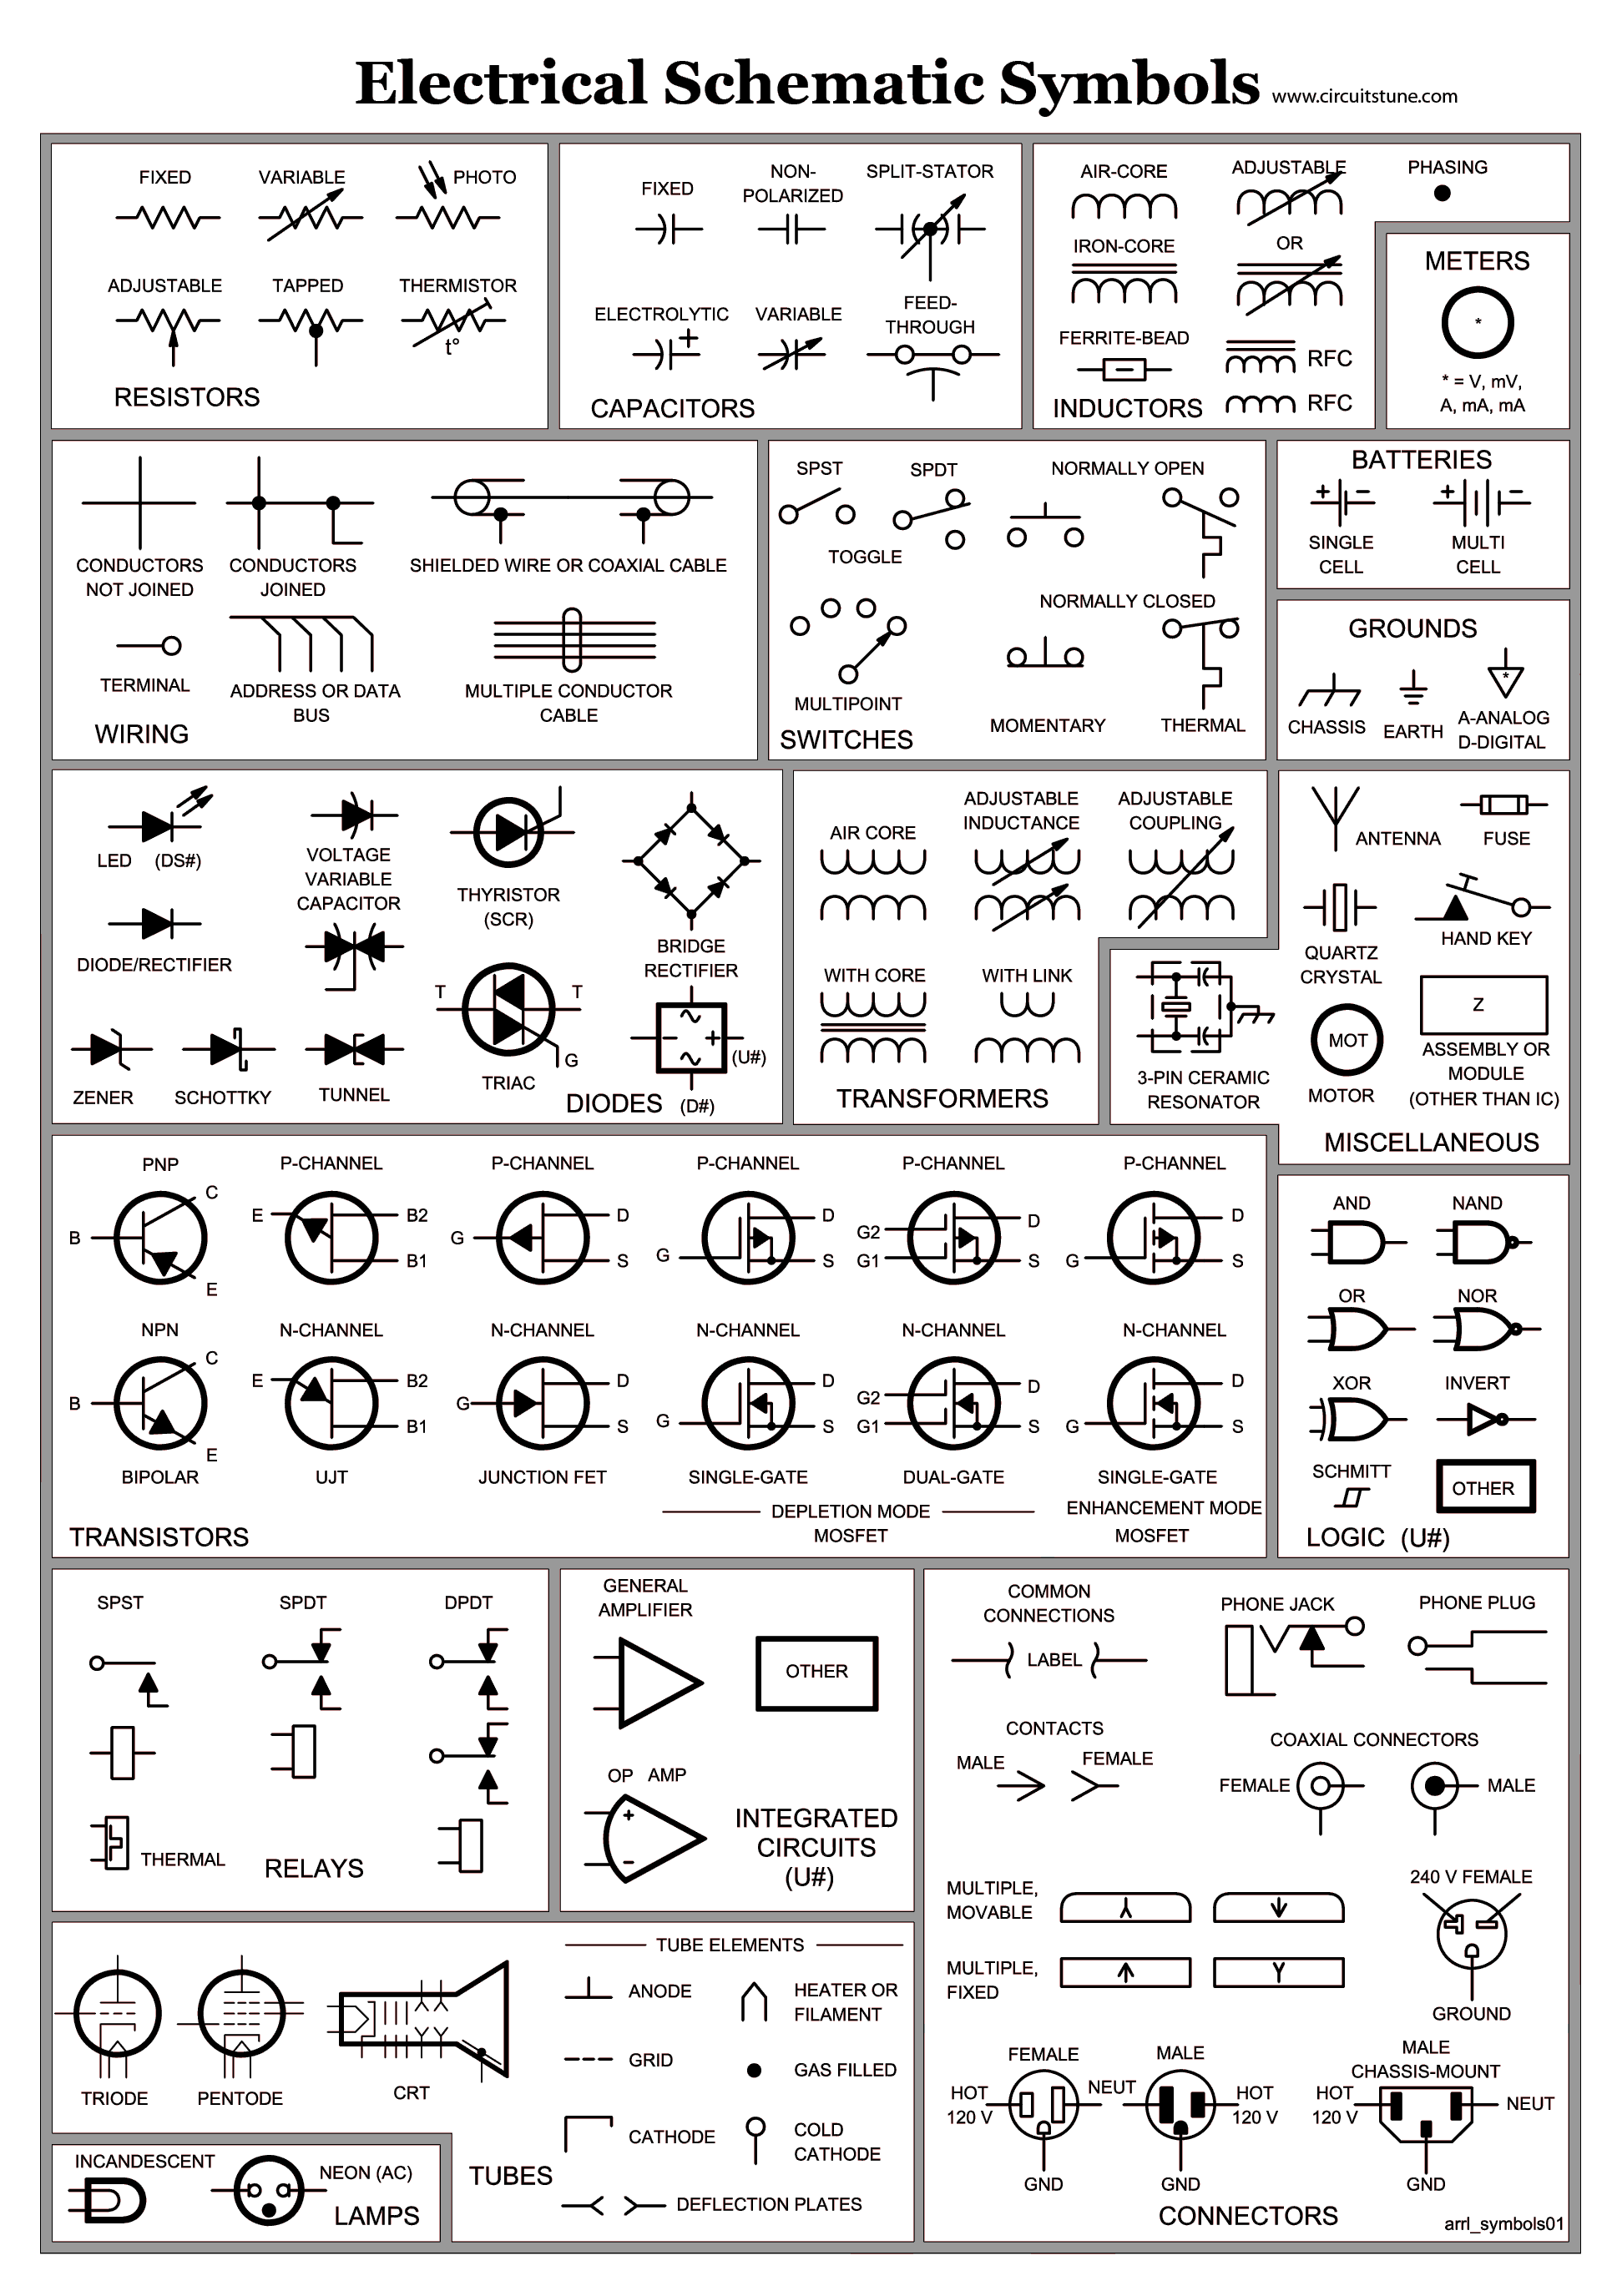 [WLLP_2054]   Haynes Wiring Diagram Legend, http://bookingritzcarlton.info/haynes-wiring-di…  | Electrical schematic symbols, Electrical circuit diagram, Electrical  wiring diagram | Wiring Diagram Signs |  | Pinterest